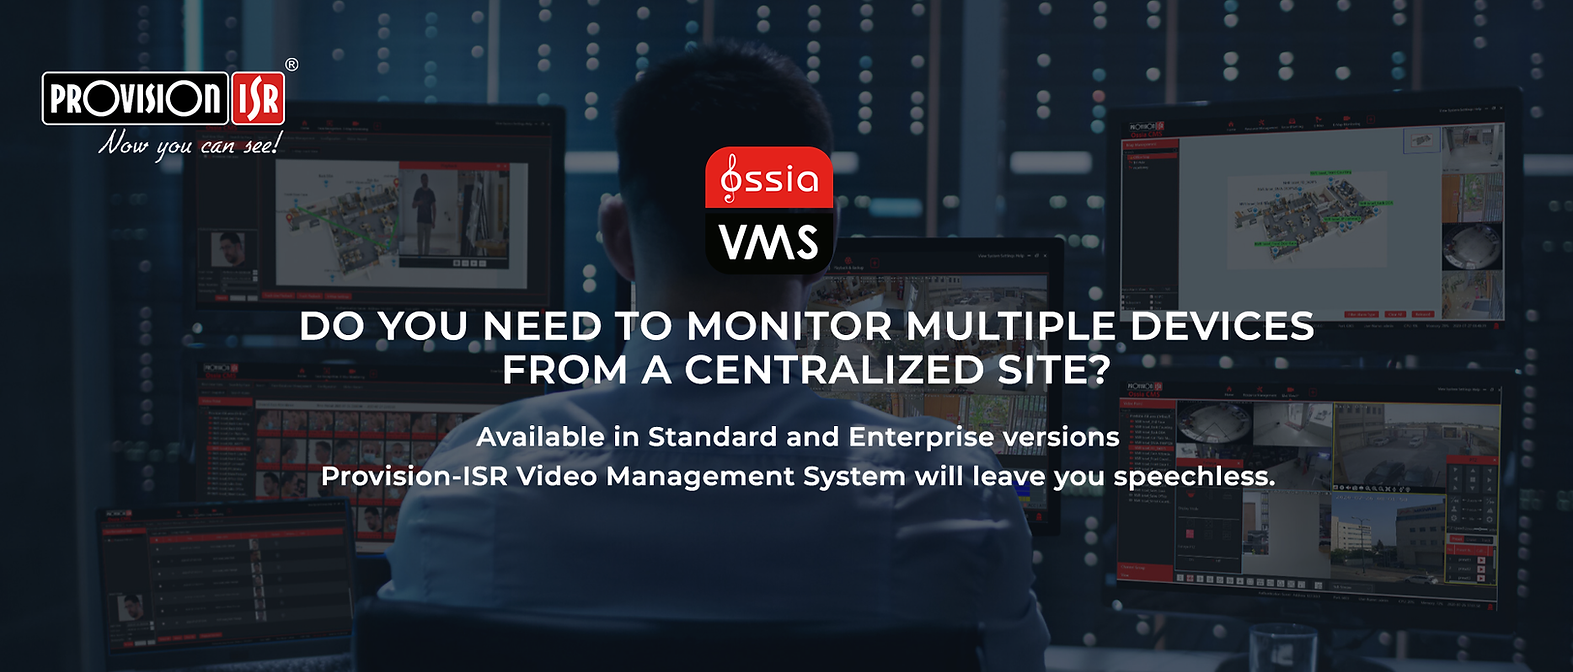 OSSIA VMS BANNER WITH TEXT.png